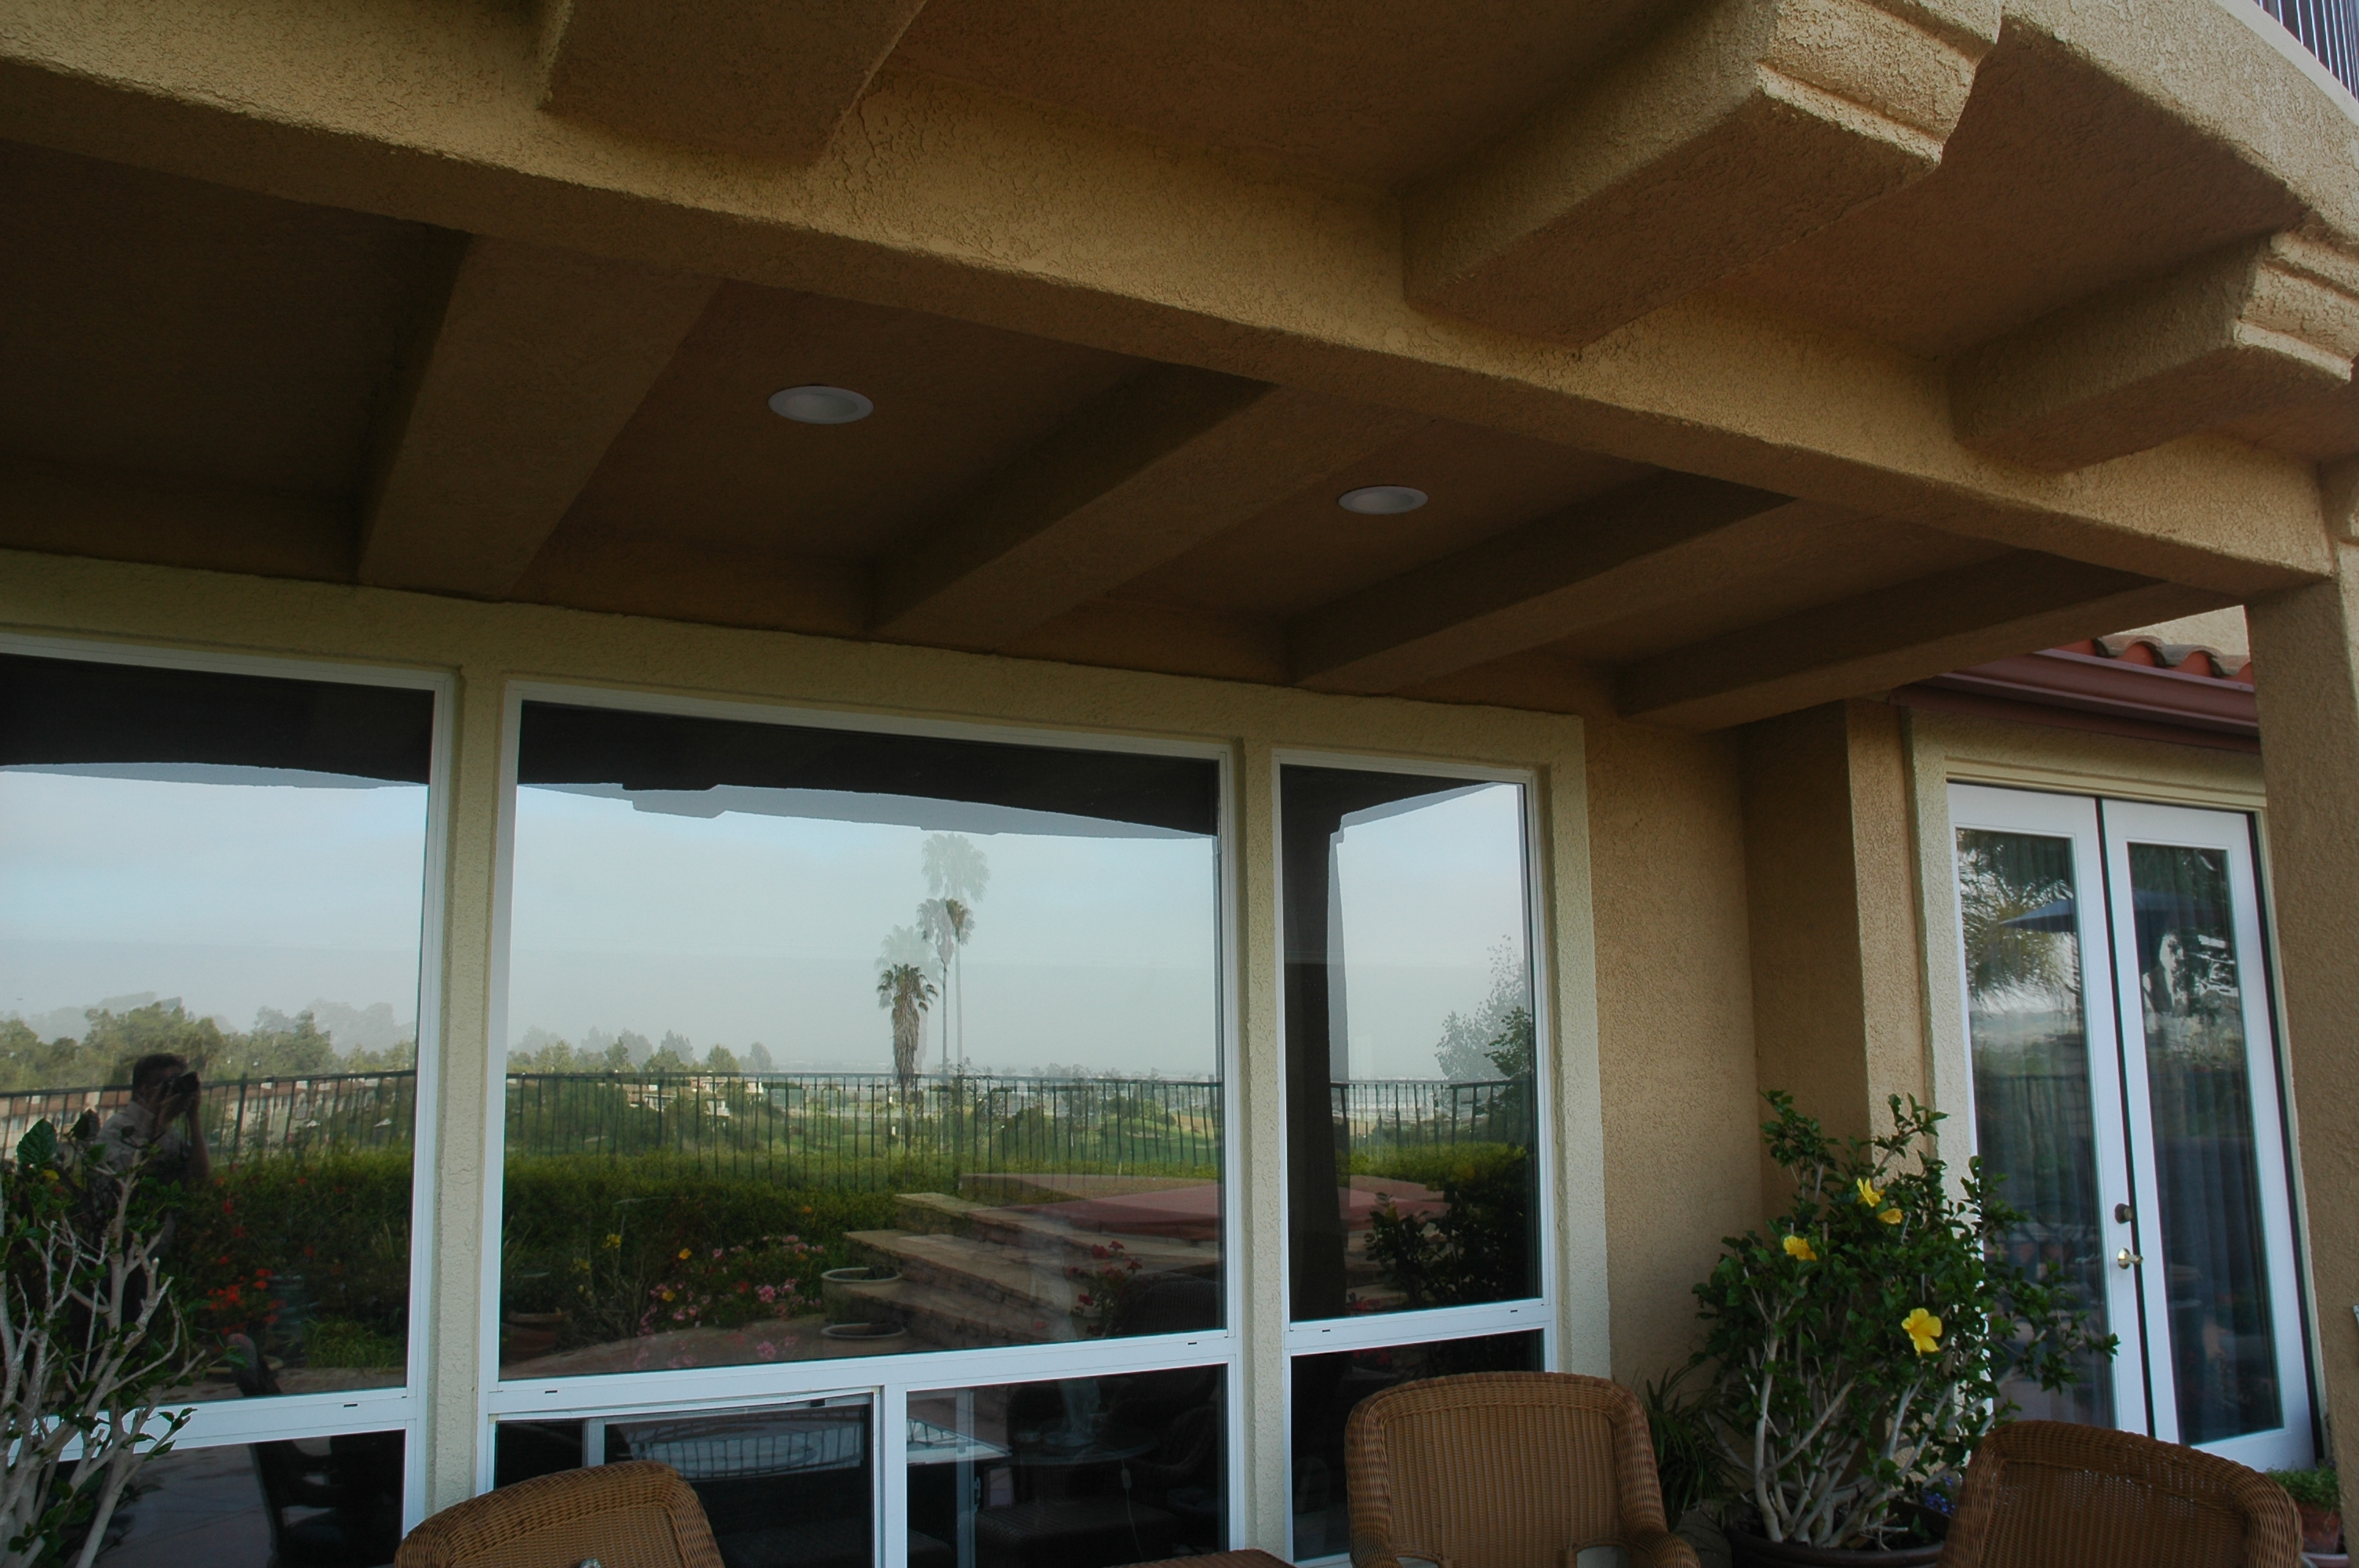 Under The Balcony, We Installed High Efficiency LED Lighting Between The Support  Beams To Illuminate The Patio Sitting Area. The Corbels Were Framed And ...